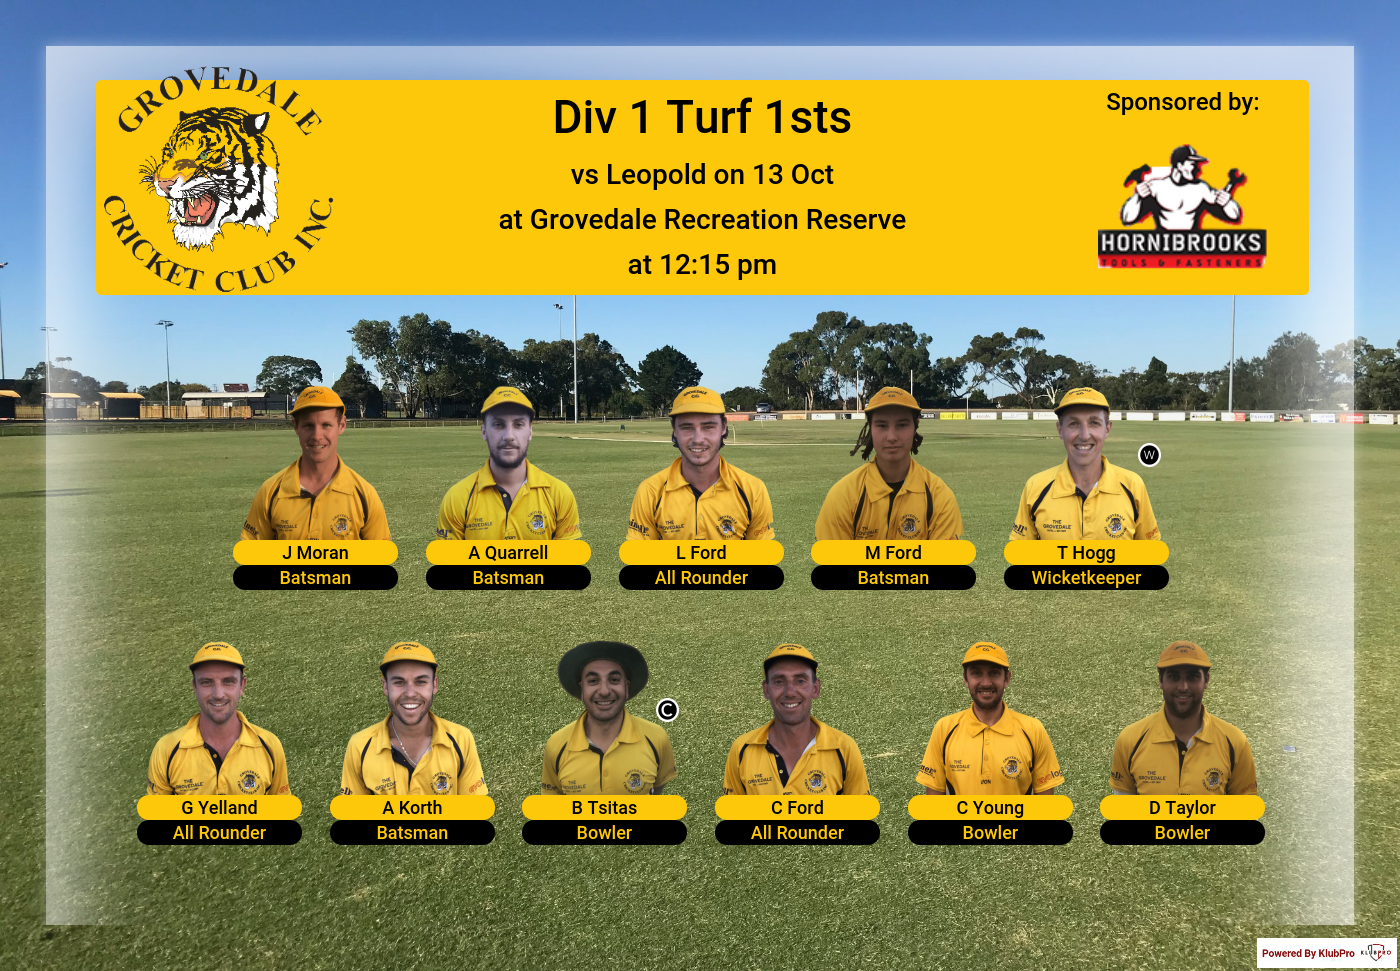 email-lineup-Div 1 Turf 1sts-Round-2-1539312416783.png